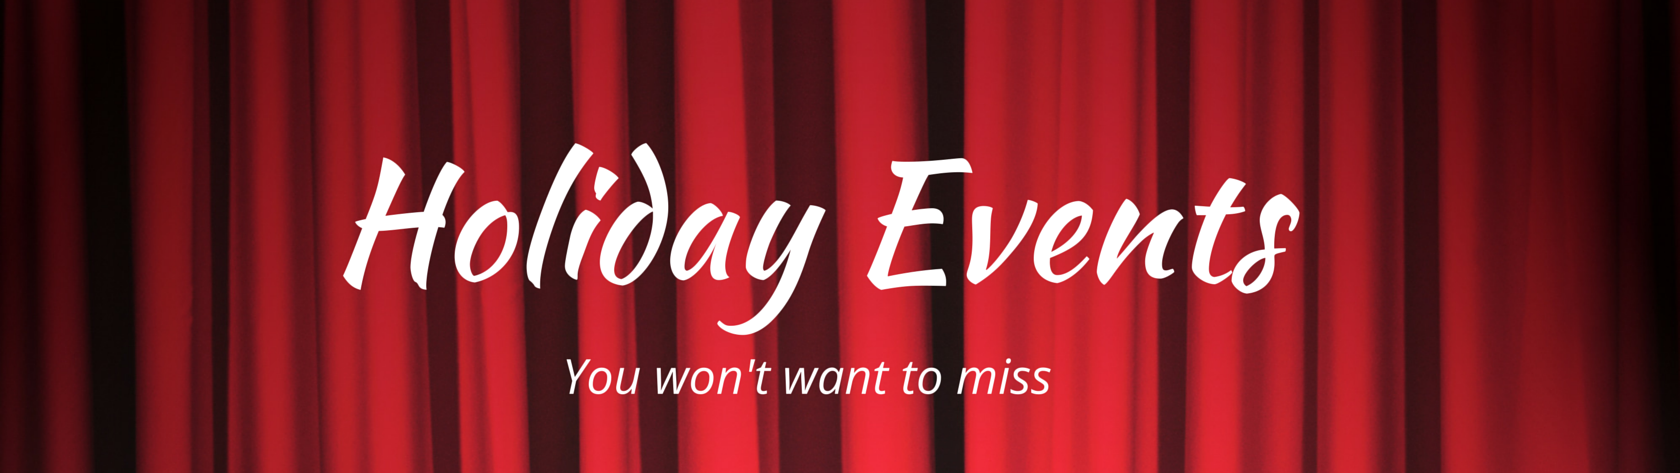 AGM-Web-Slider-holiday-events